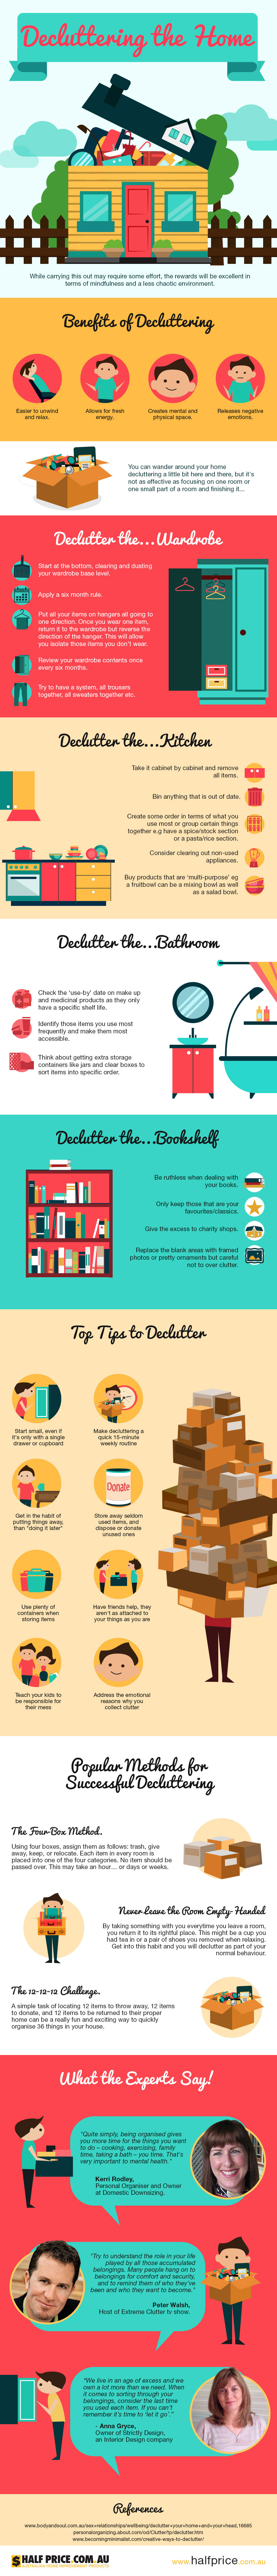 Create New Space: Declutter Your Home - Infographic